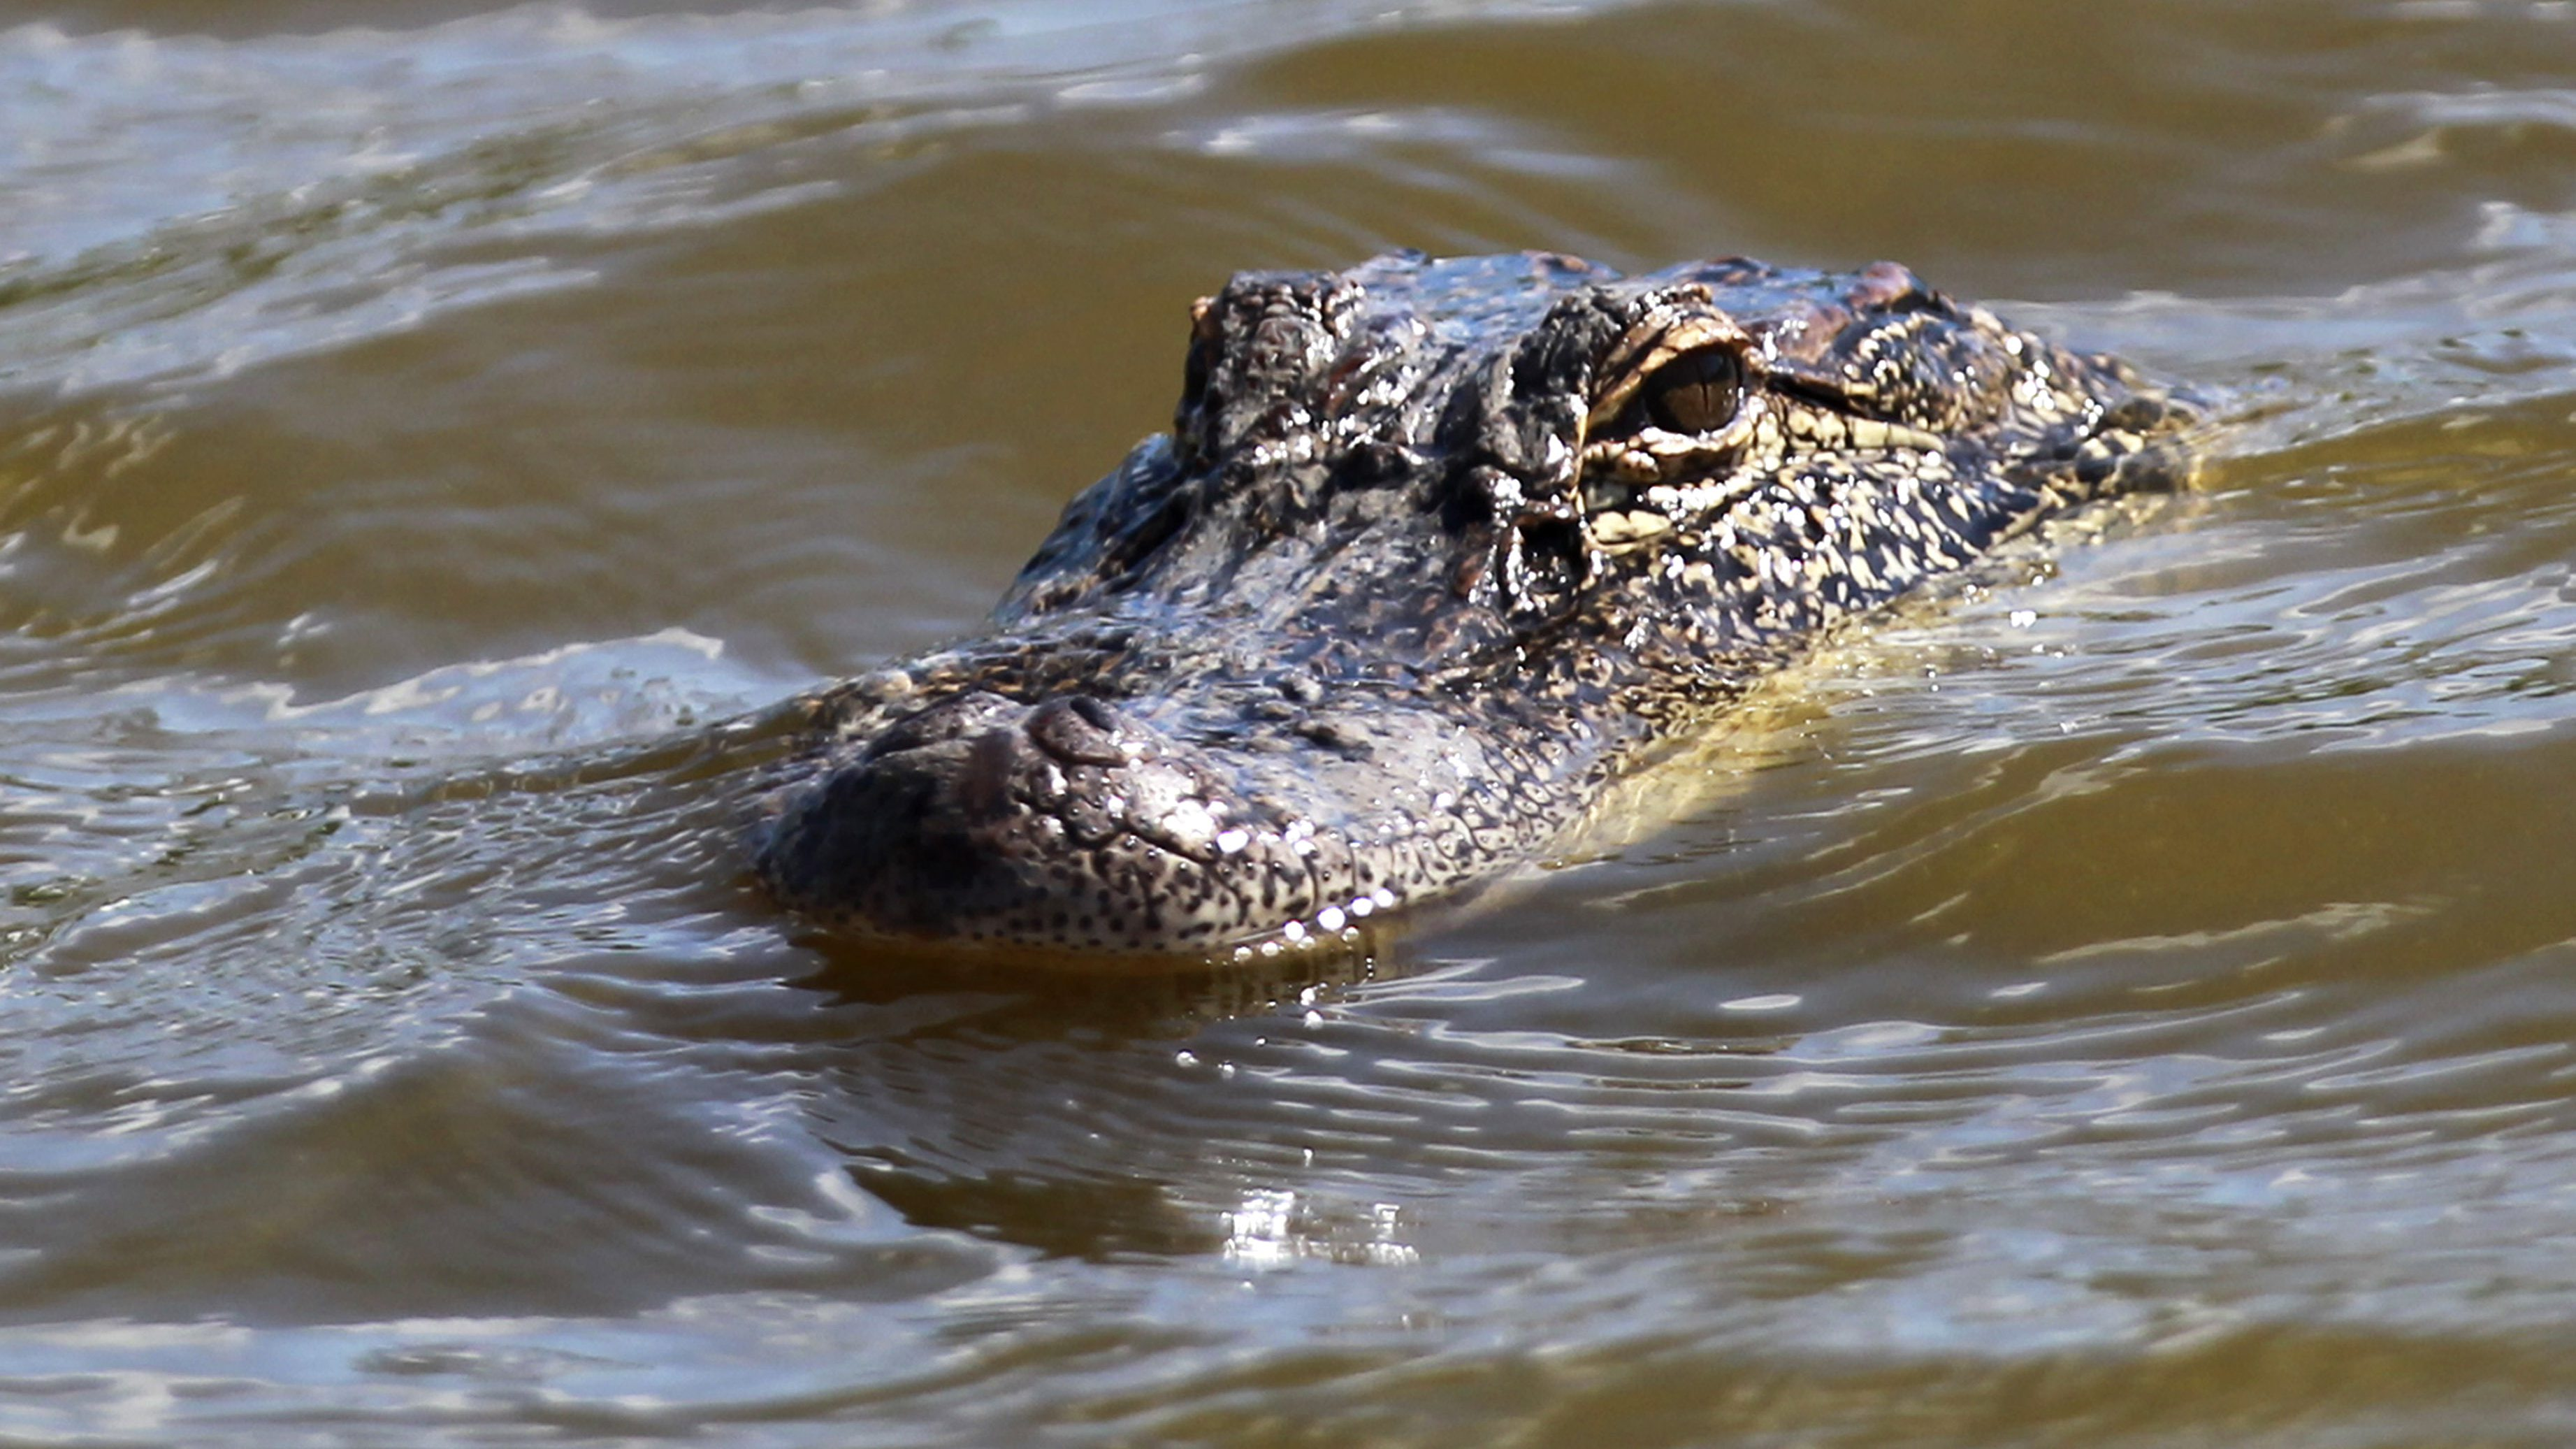 An alligator peers from a lagoon next to the 16th hole during the third round of the Zurich Classic golf tournament at TPC Louisiana in Avondale, La., Saturday, April 28, 2012.